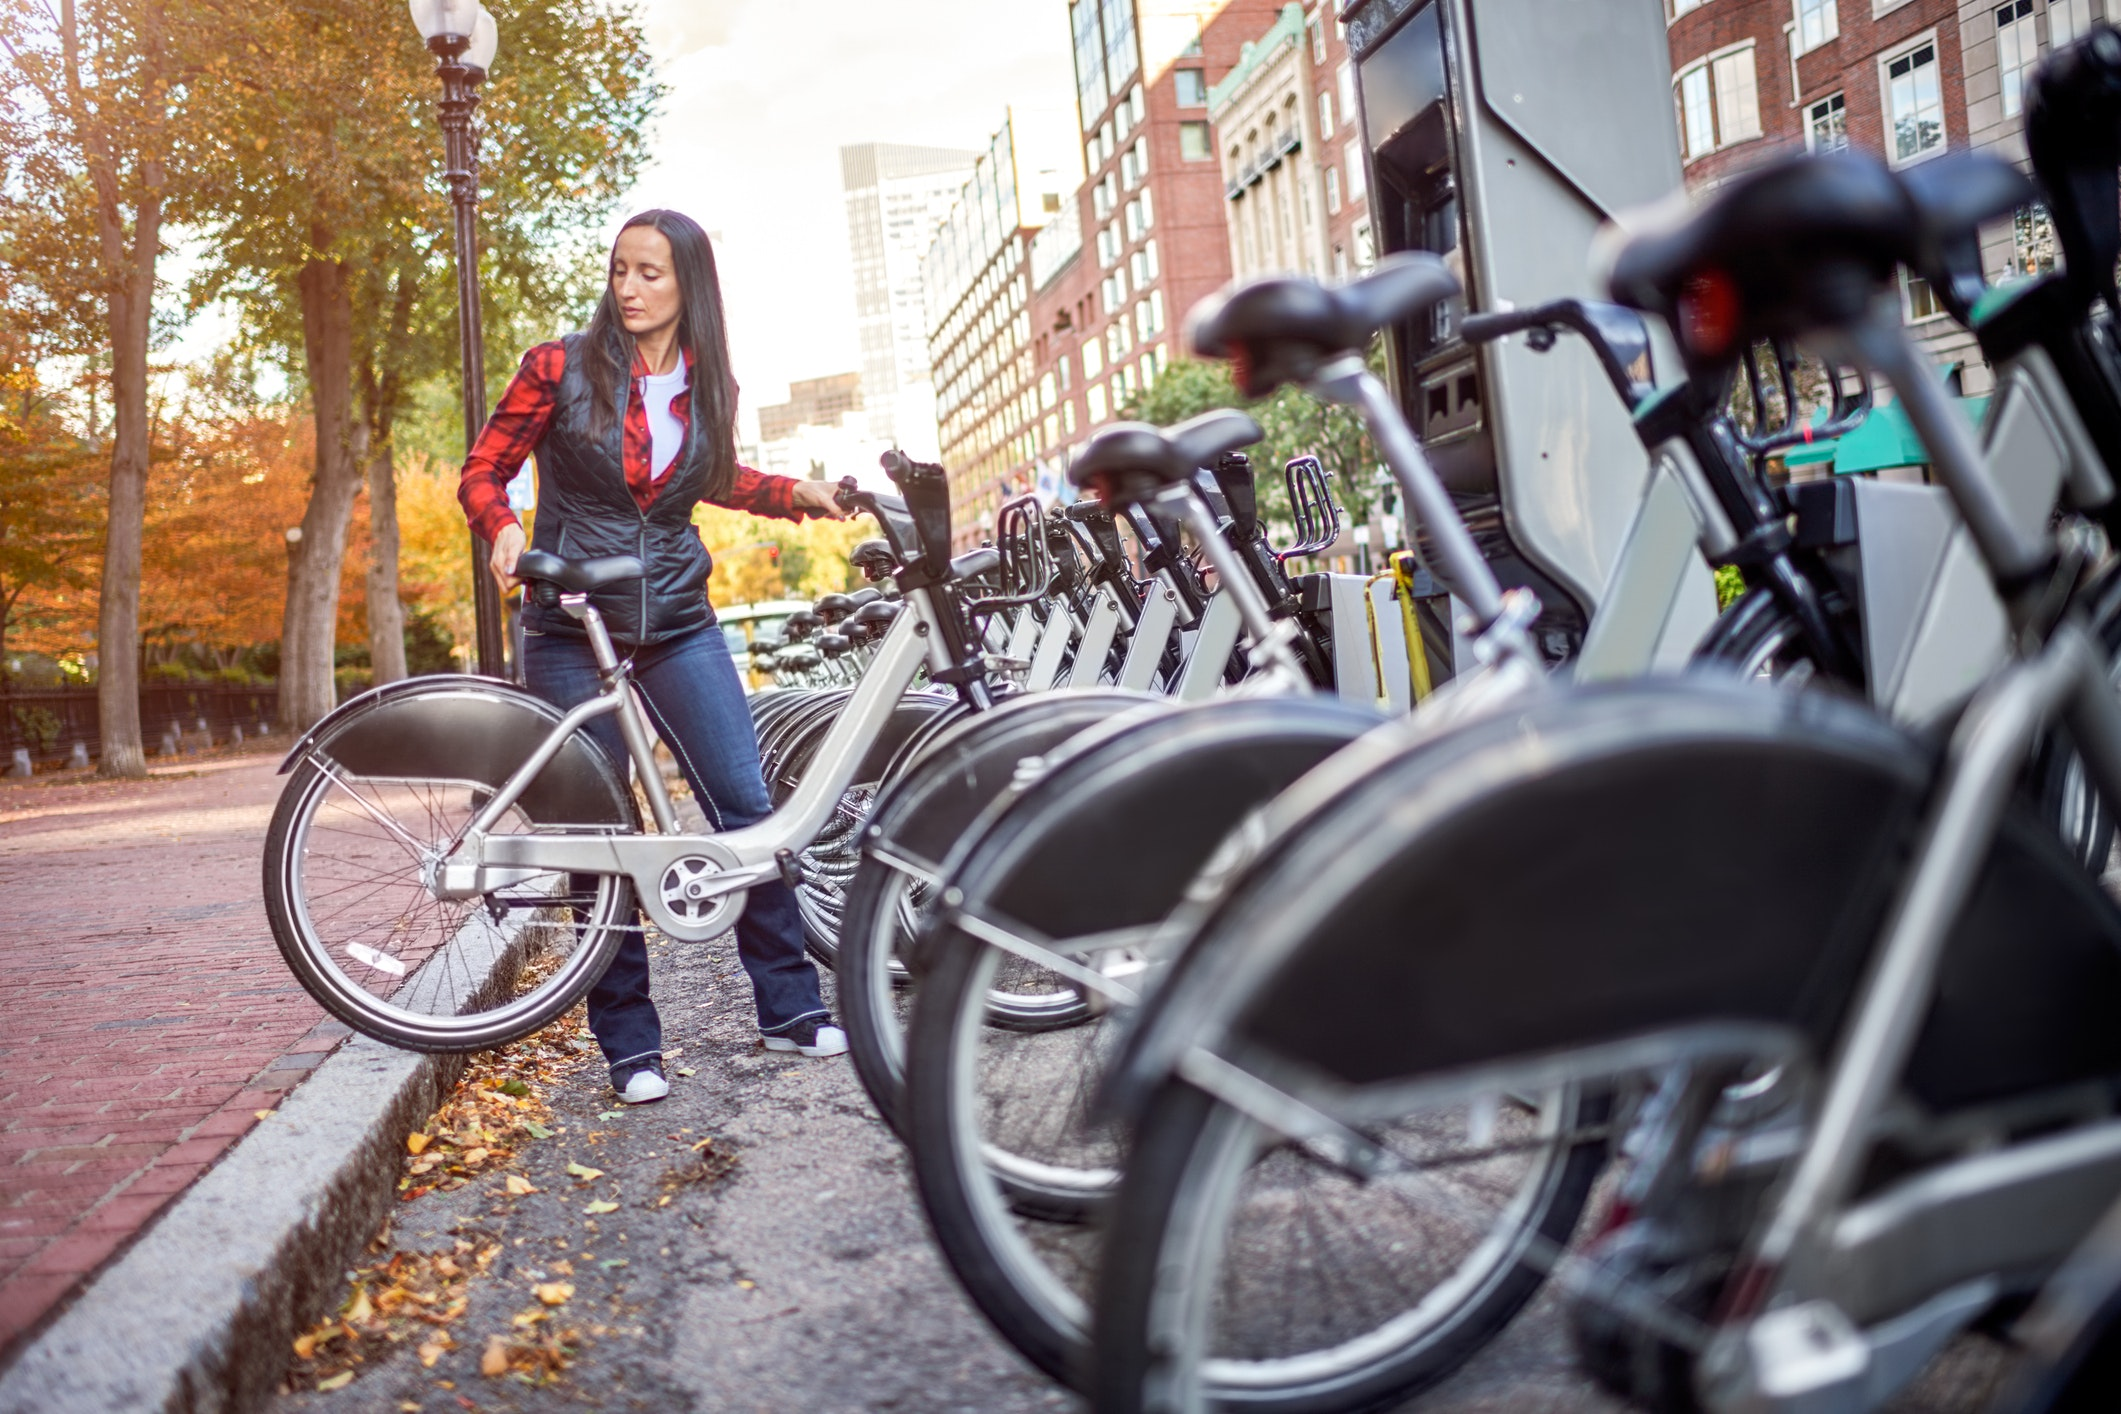 The 10 Most Affordable Bike Share Programs in the U.S.